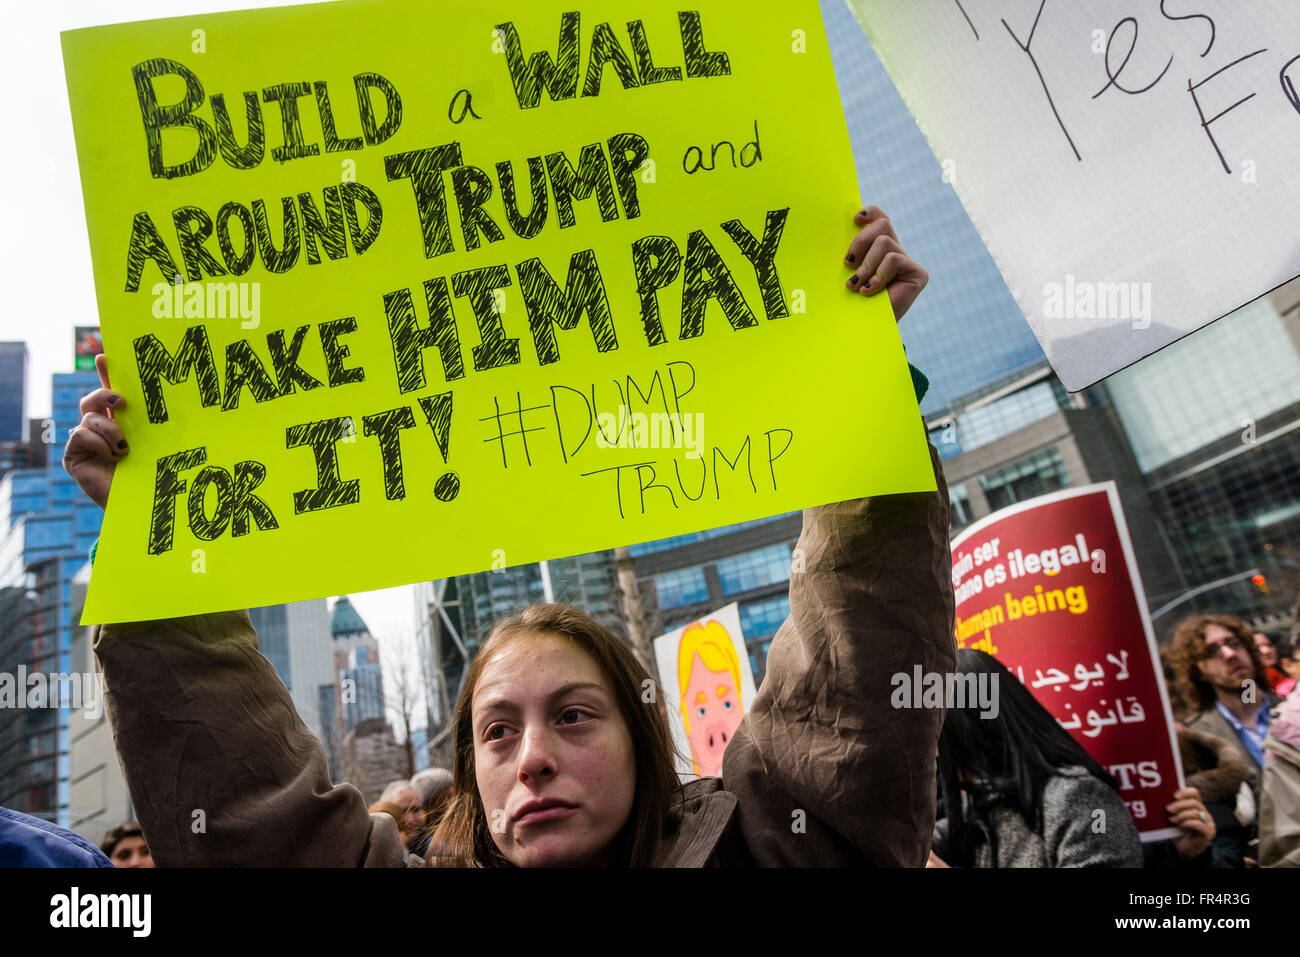 New York, NY - 19 March 2016 - A couple thousand protesters gathered outside Trump International Hotel and Tower, Stock Photo